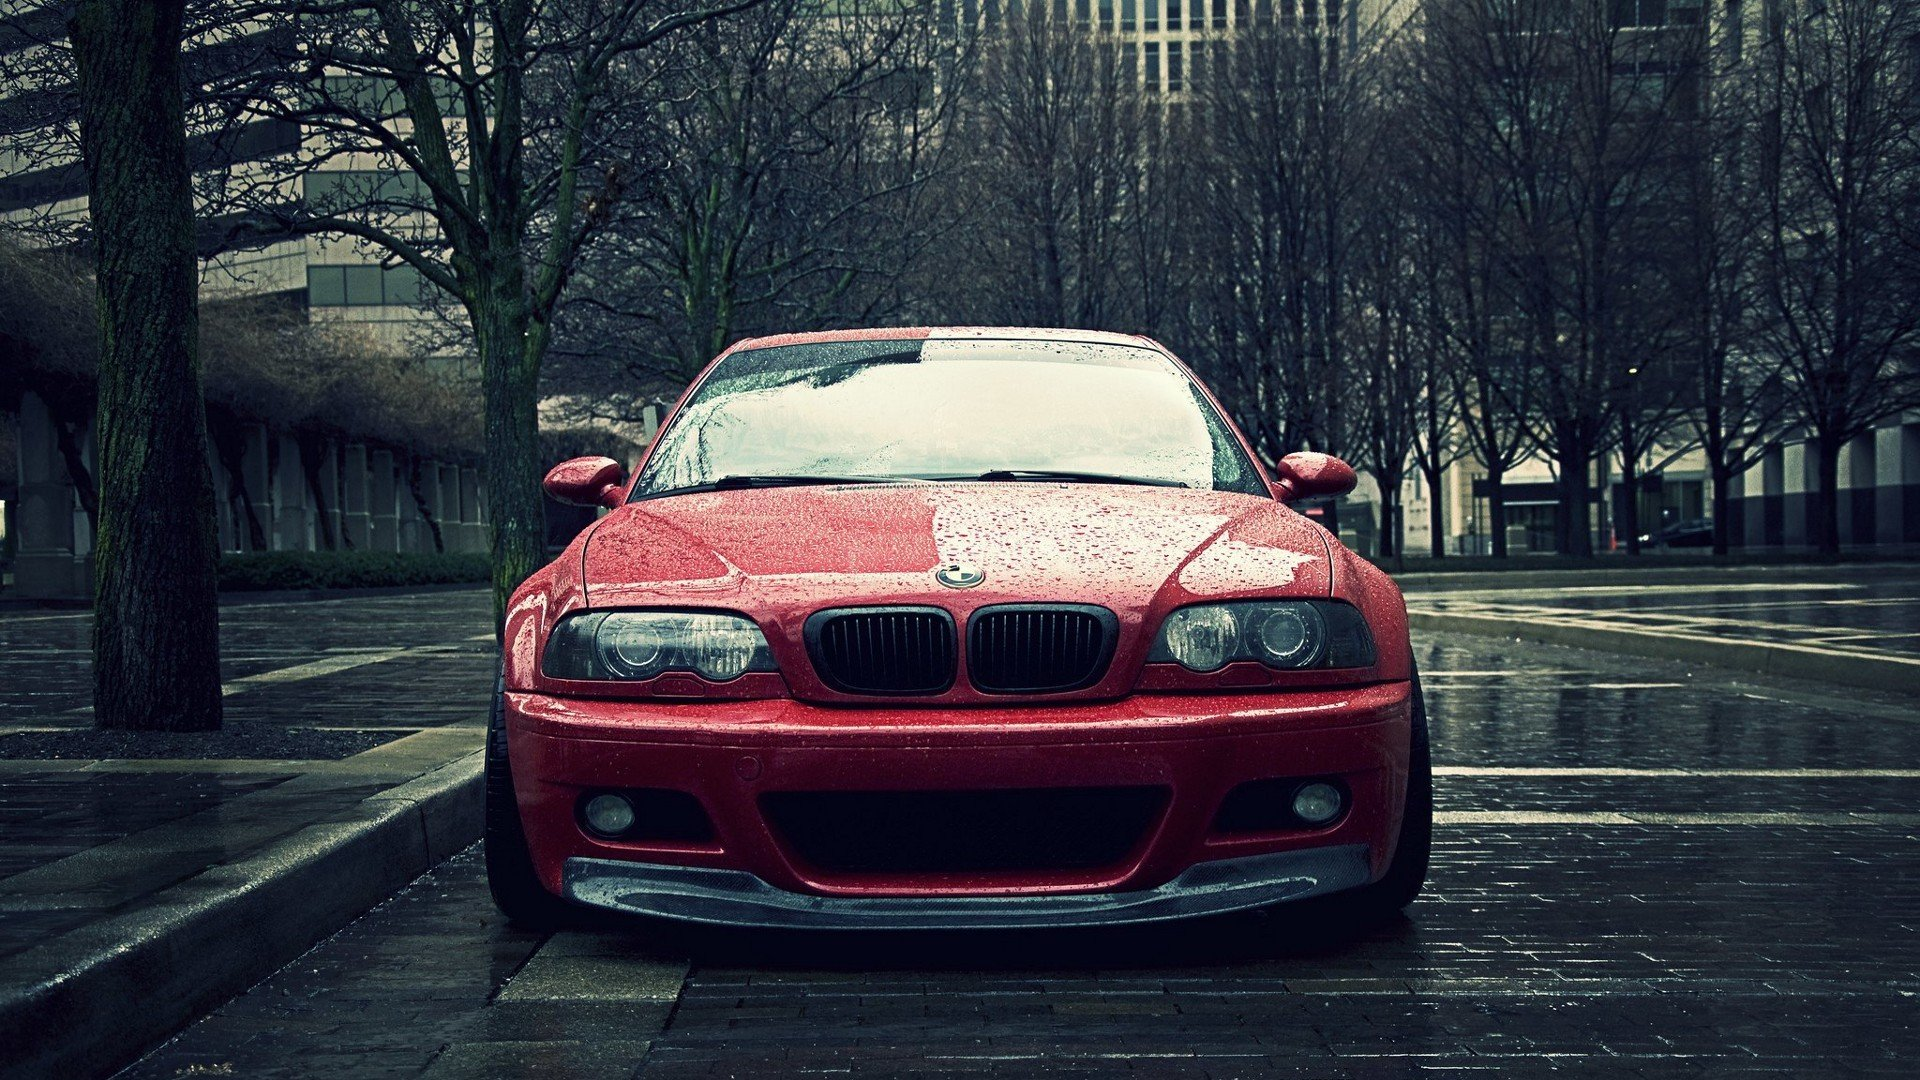 Bmw M3 E >> Bmw-m3-e46-car-hd-wallpaper-1920x1080-1336 wallpaper | 1920x1080 | 610196 | WallpaperUP